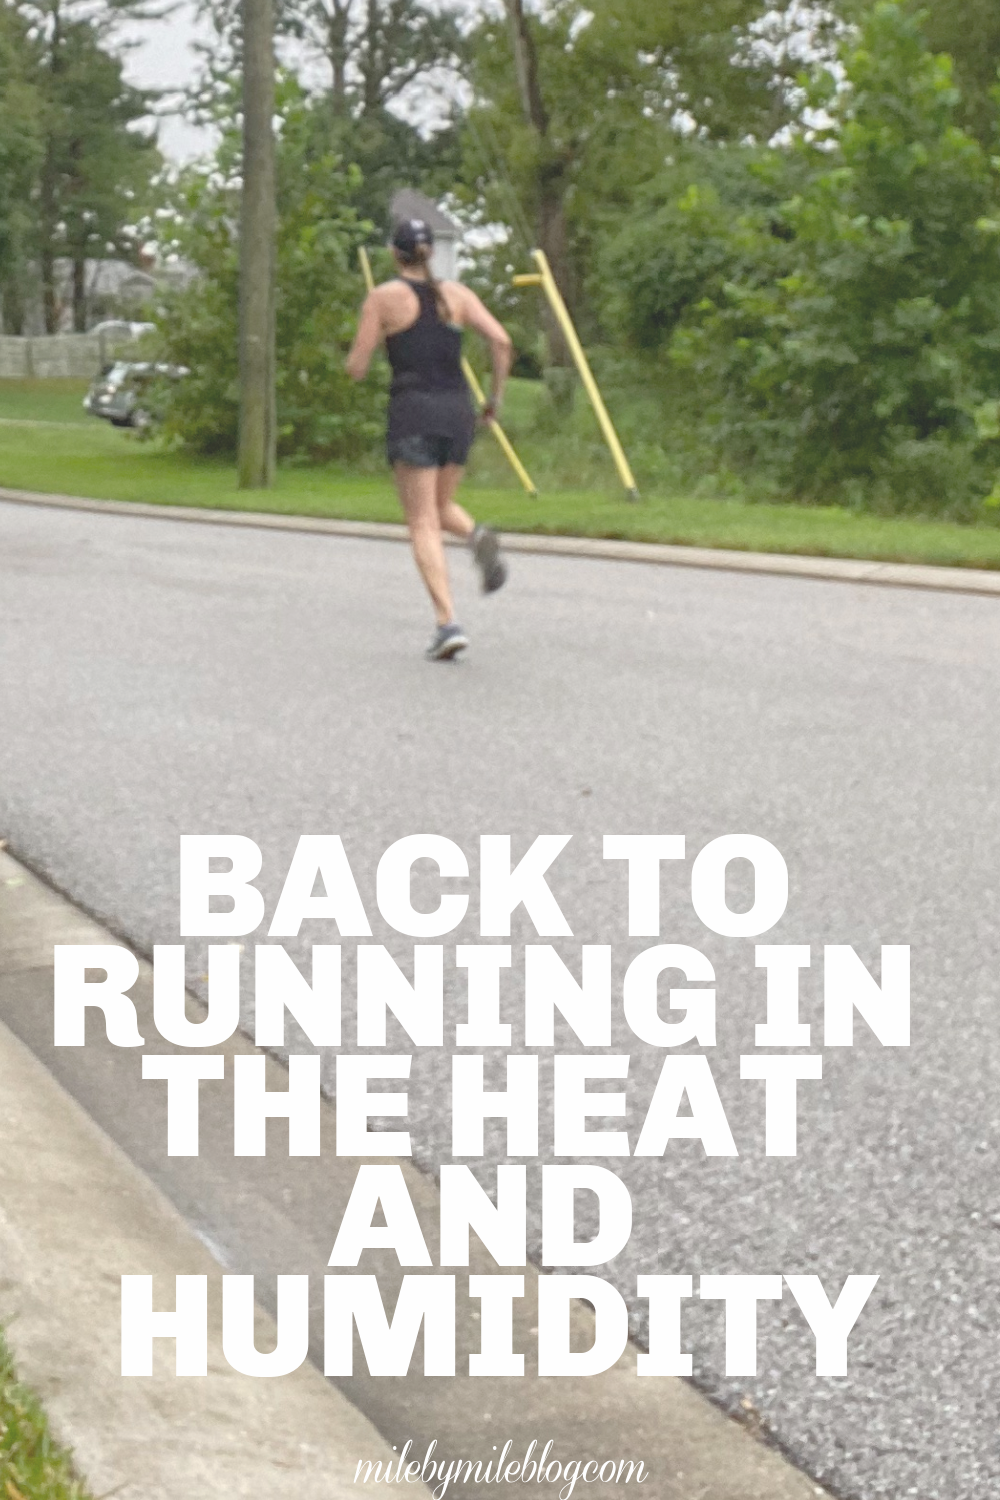 This week I was back to running in the heat and humidity after a week off from running. You can check out my post to see how my workouts went this week and the race I will be focusing on for this fall.